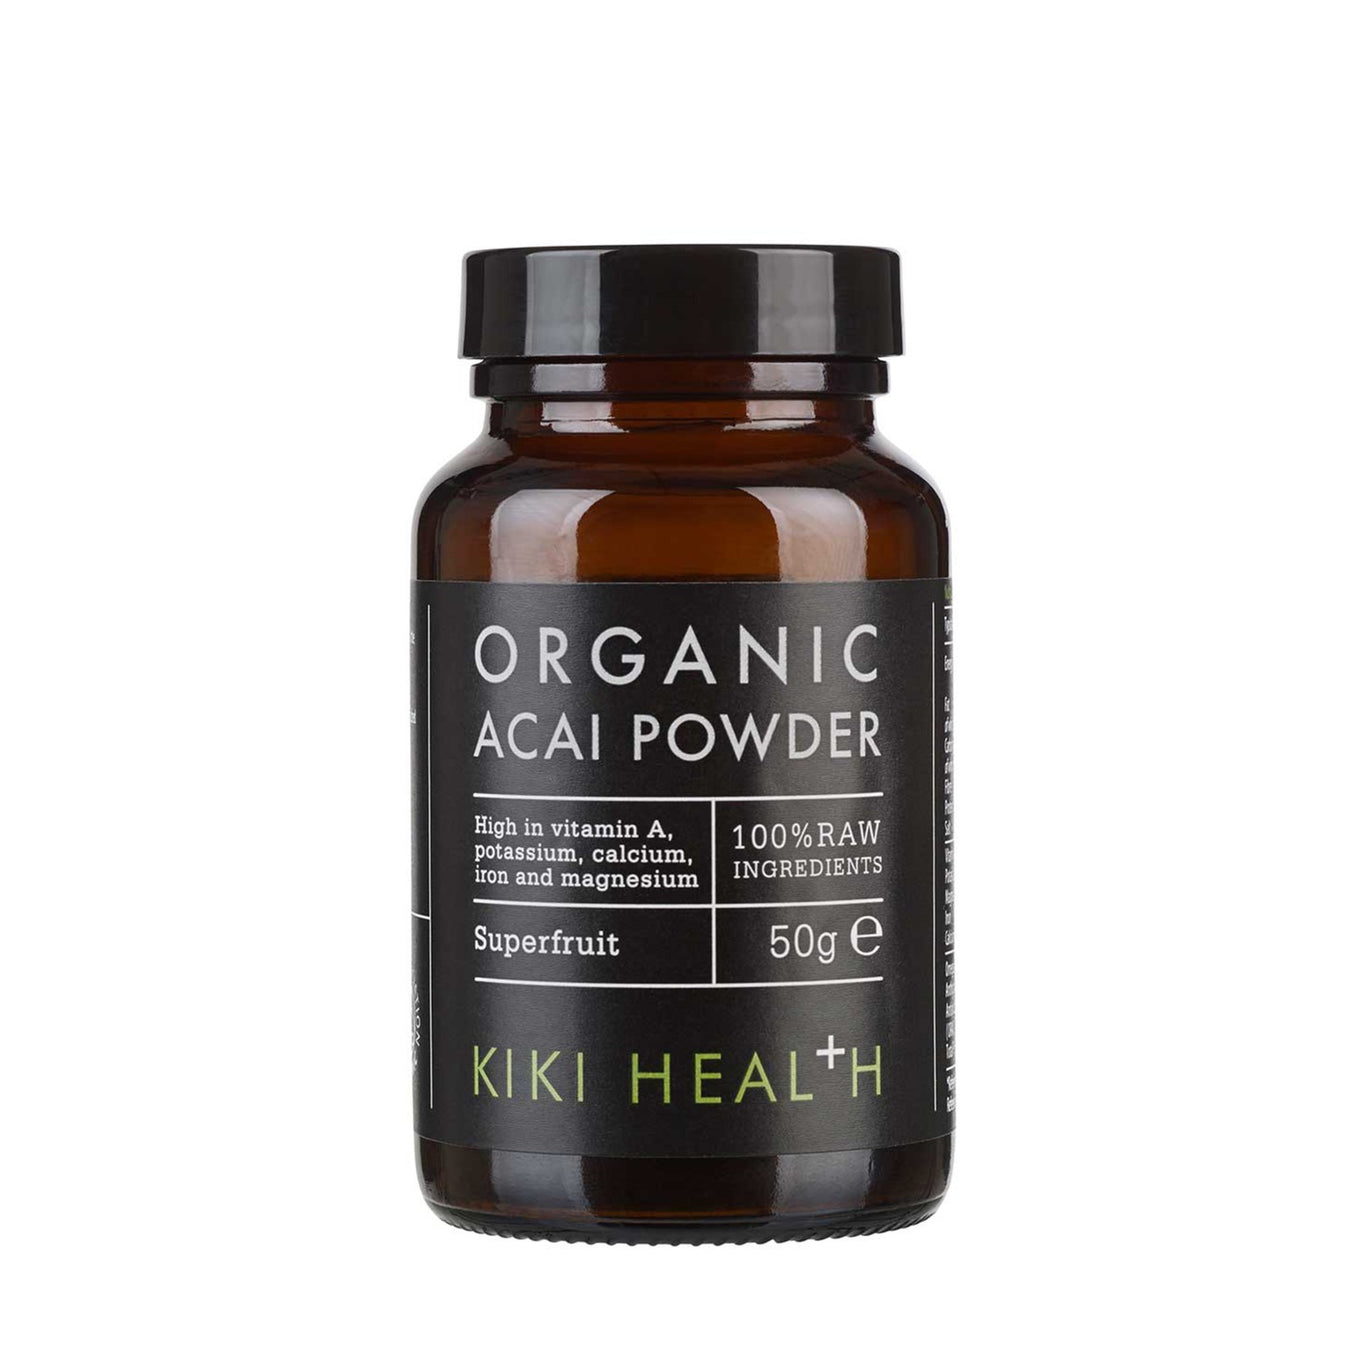 有機巴西莓粉 Kiki Health Organic Acai Powder (50g)